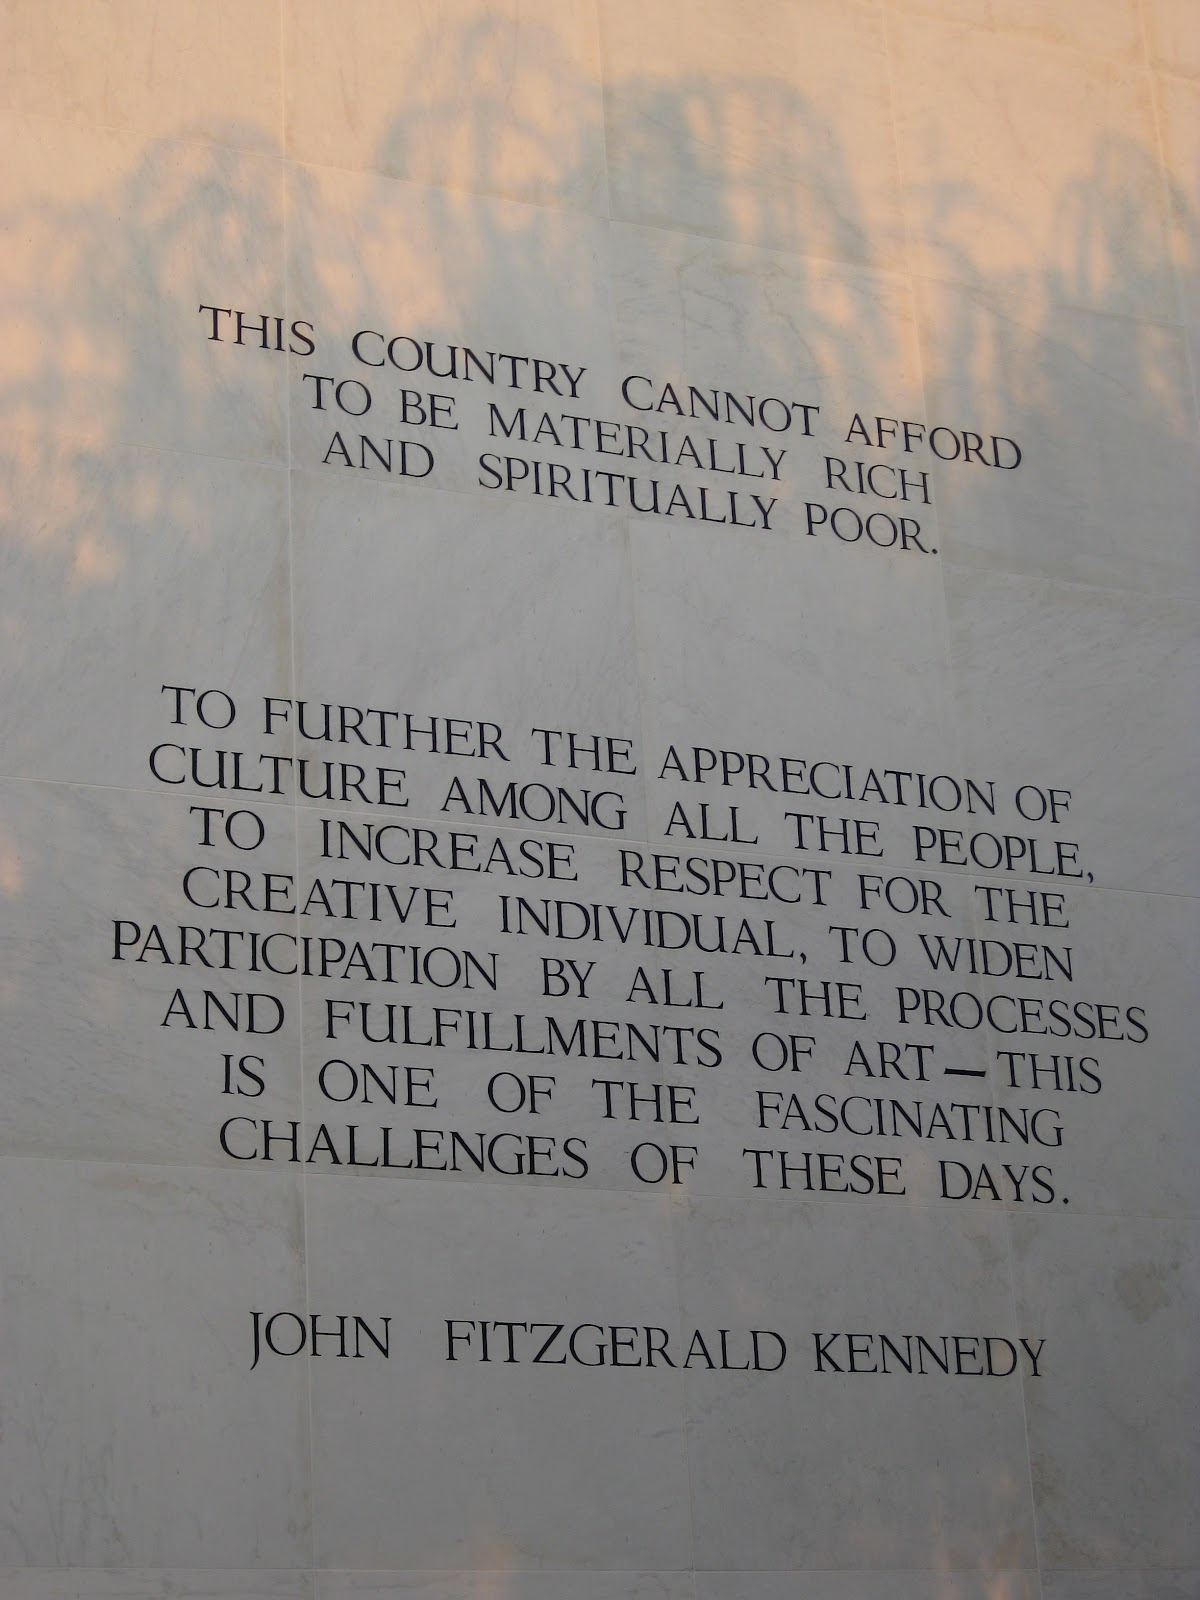 Priority List Quotes on Jfk's Priority List The